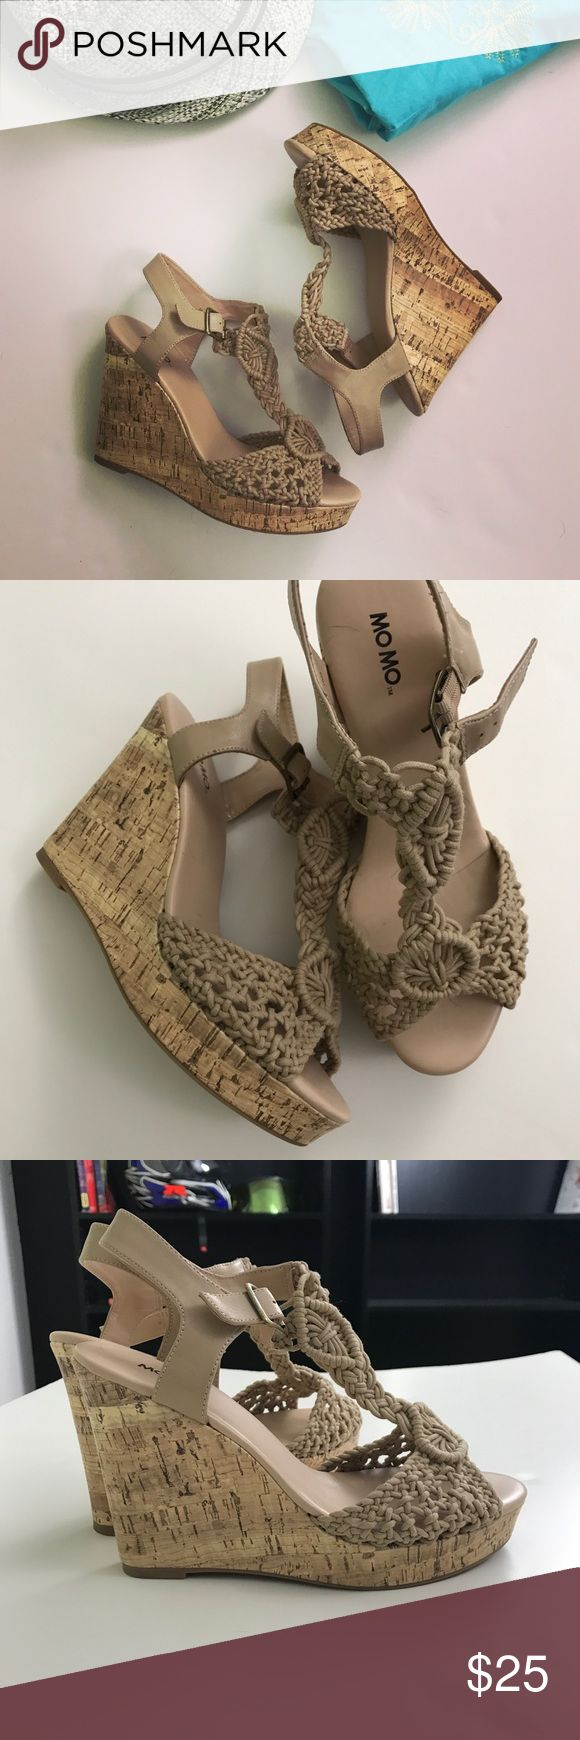 """Momo Cork-patterned wedge tan textile sandals Momo Cork-patterned wedge tan textile sandals are extremely comfortable and cute! Upper textile knit like material, Buckle closure, wedge heel 5"""", platform upfront about 1"""". Comfortable fit for wide feet thanks to material front of the sandal. Size 10. New, never worn, just no tags. 🌴for those of you who spending holidays in tropics or live in warmer parts of USA- great wedges to wear with dresses and skirts. Lily Pulitzer dress is on sale as…"""